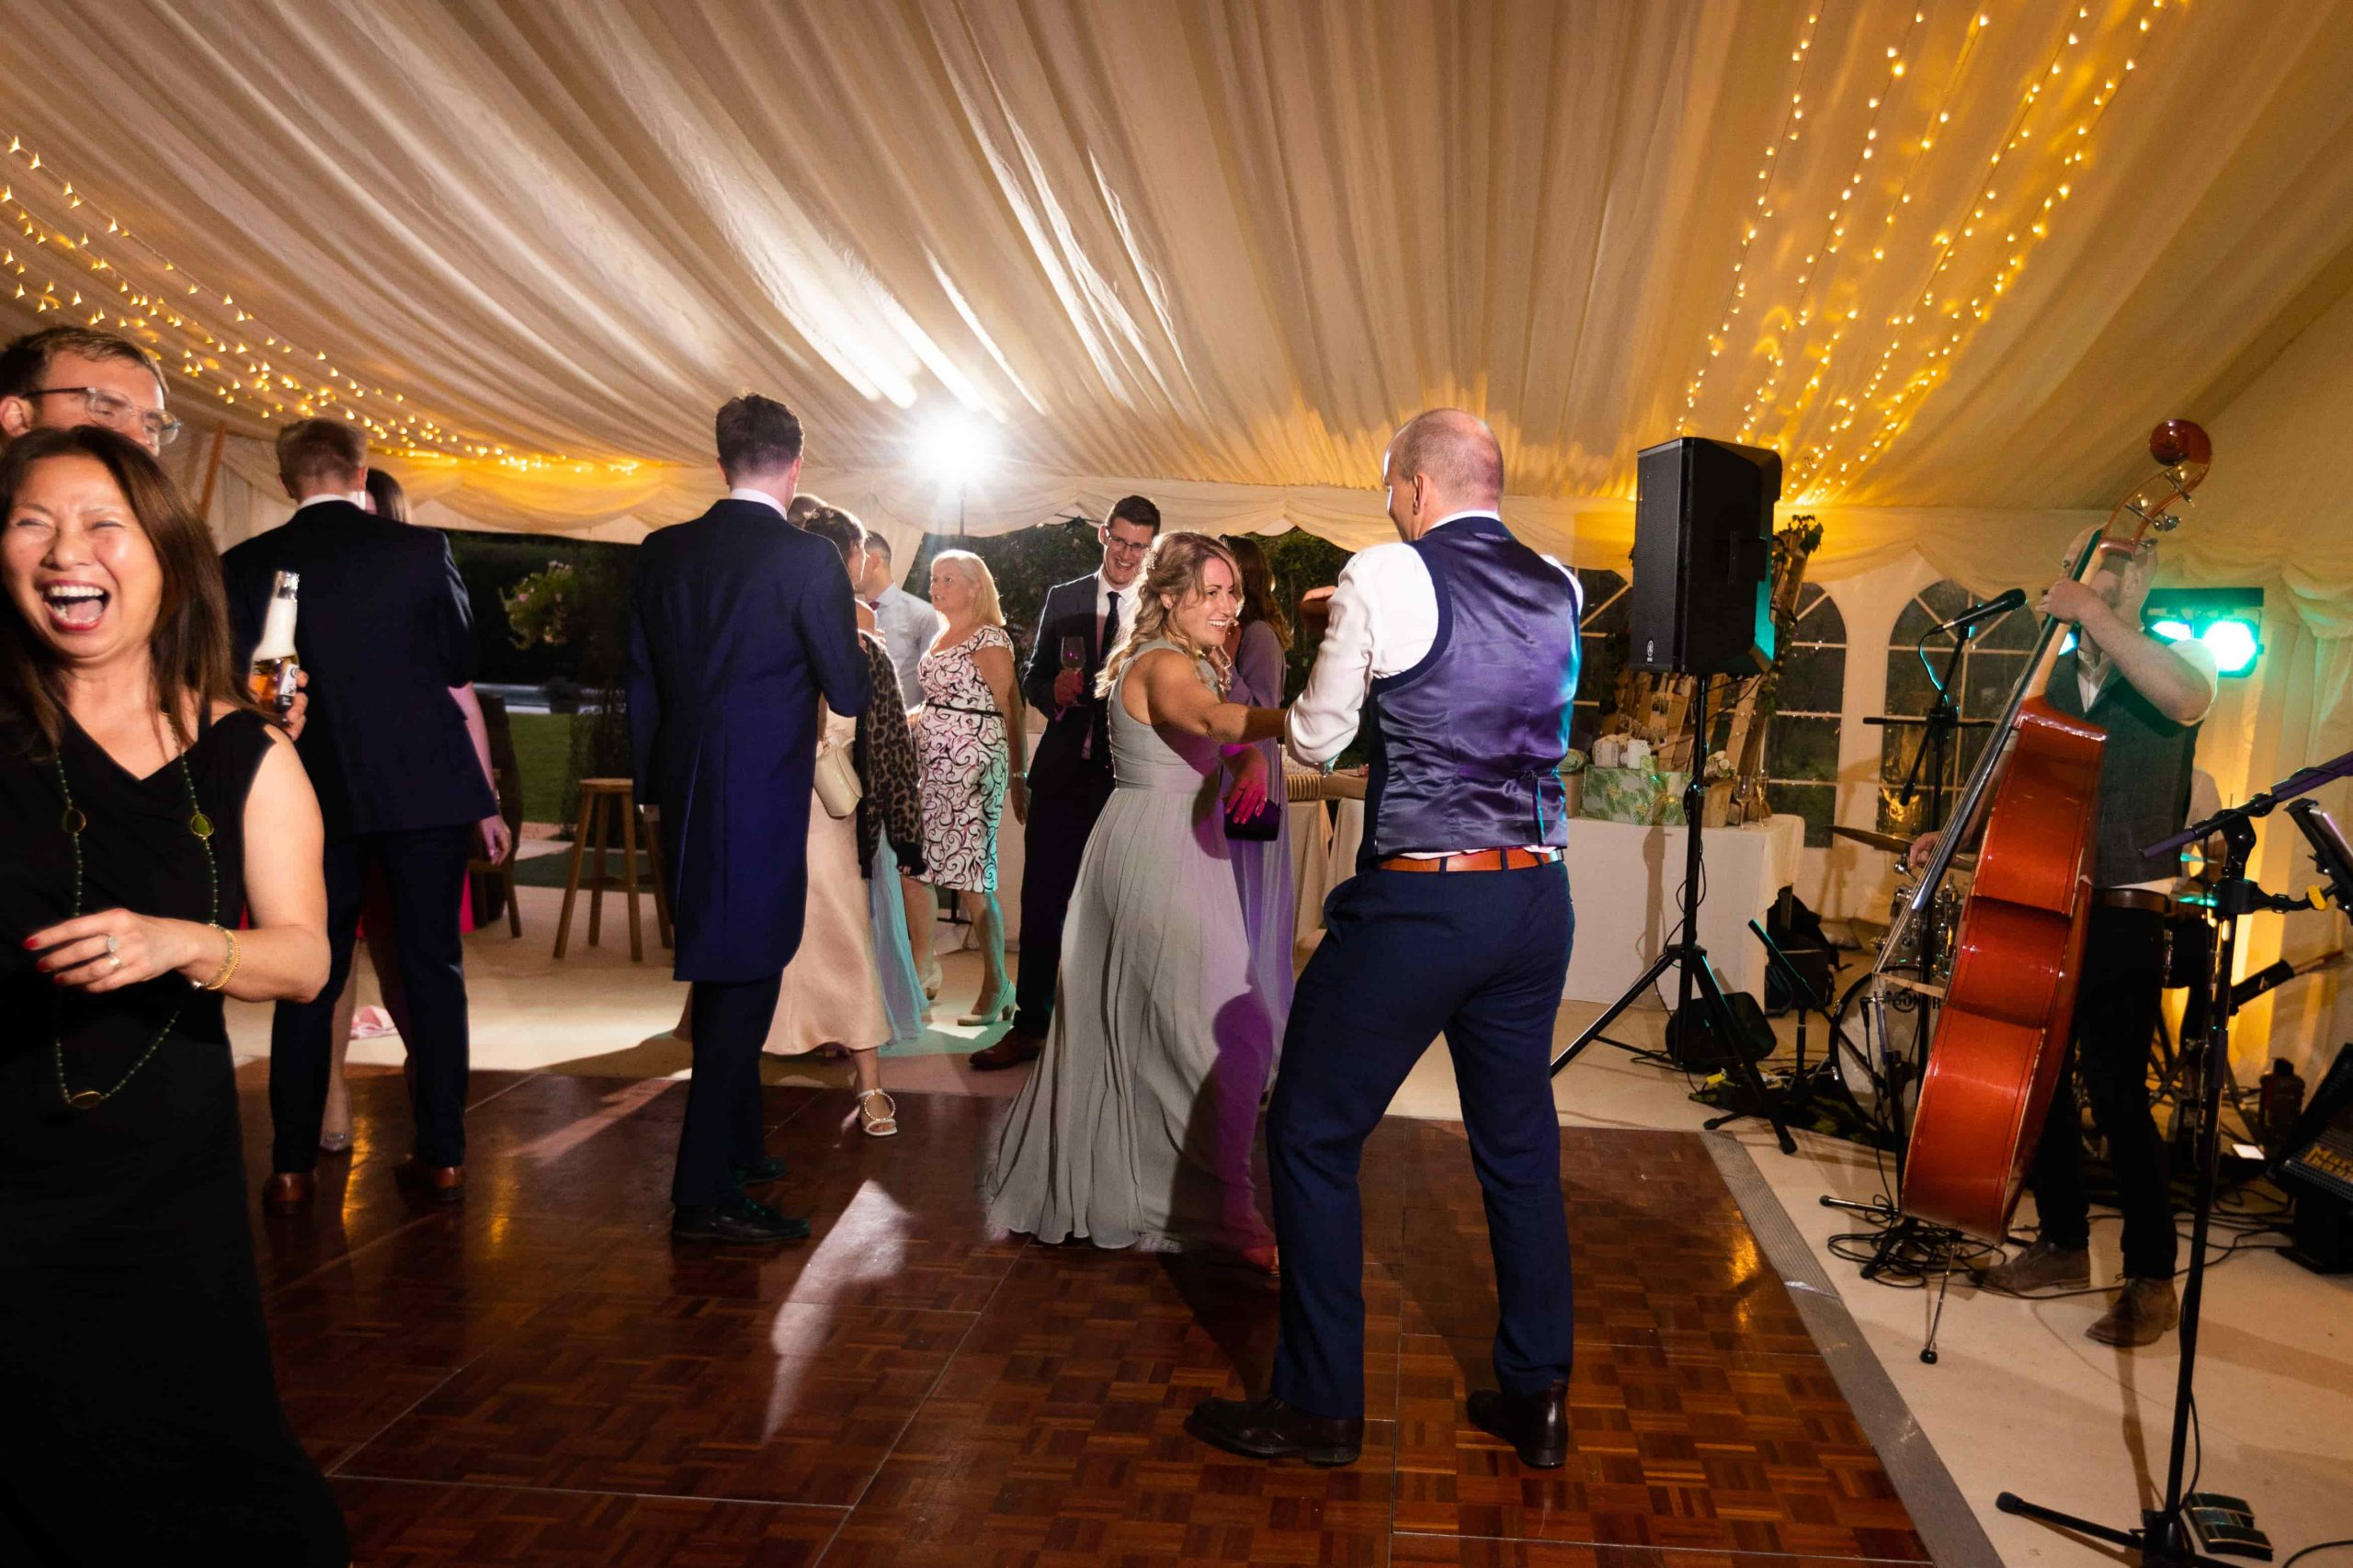 Sophie and Matts wedding guests dancing